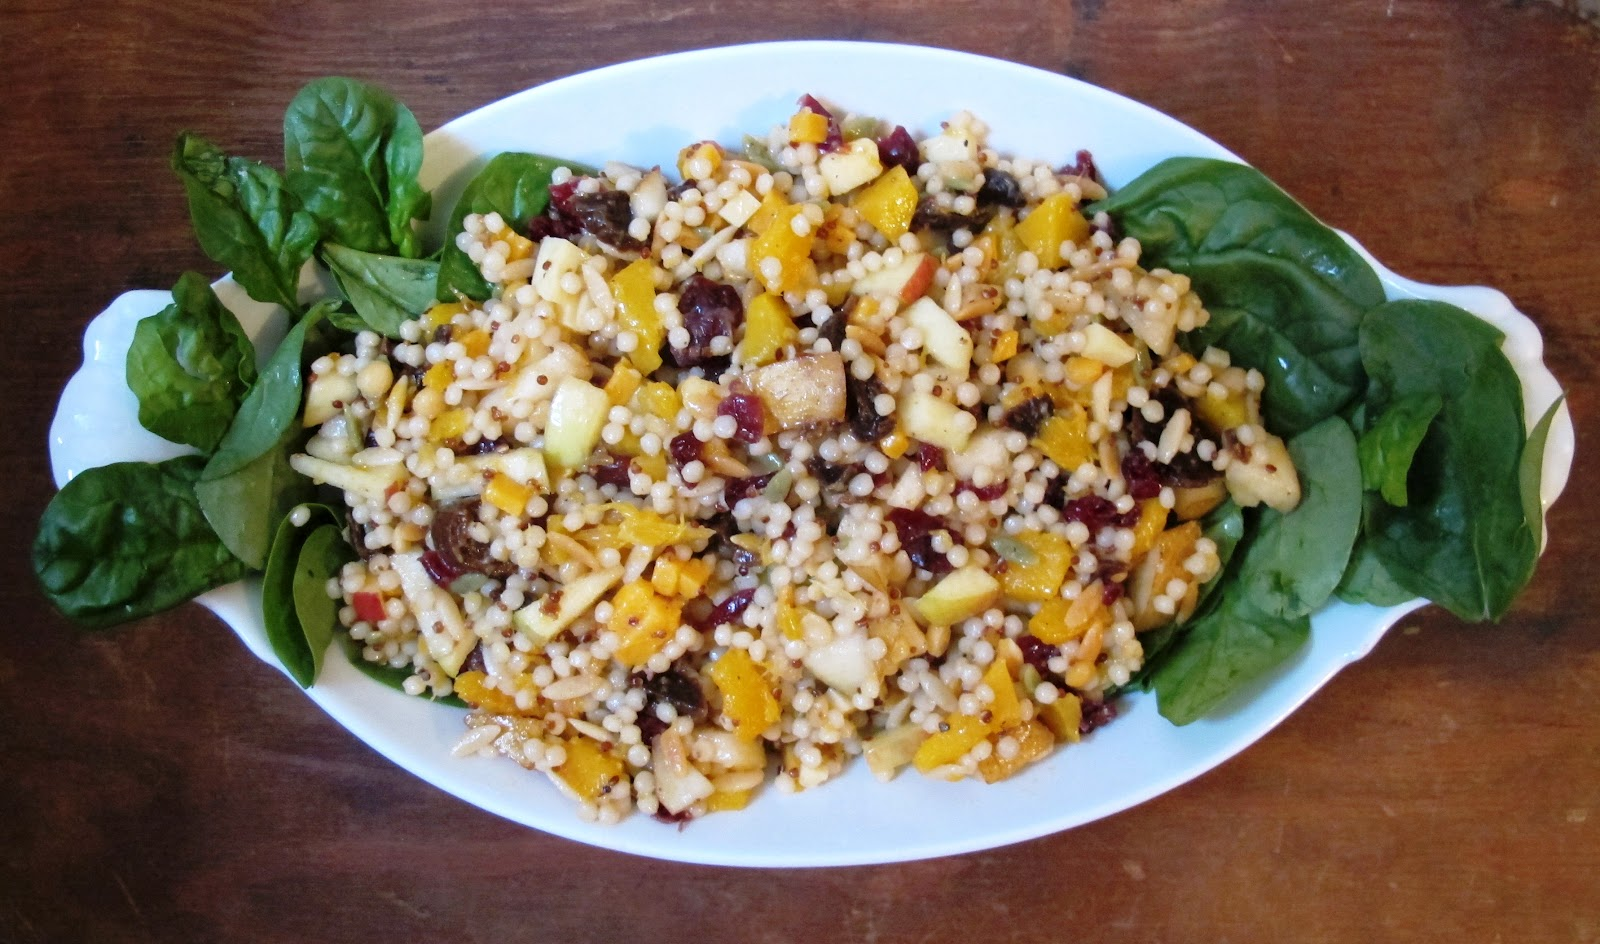 ... Squash -- Israeli Couscous-Butternut Squash Salad with Fall Fruit